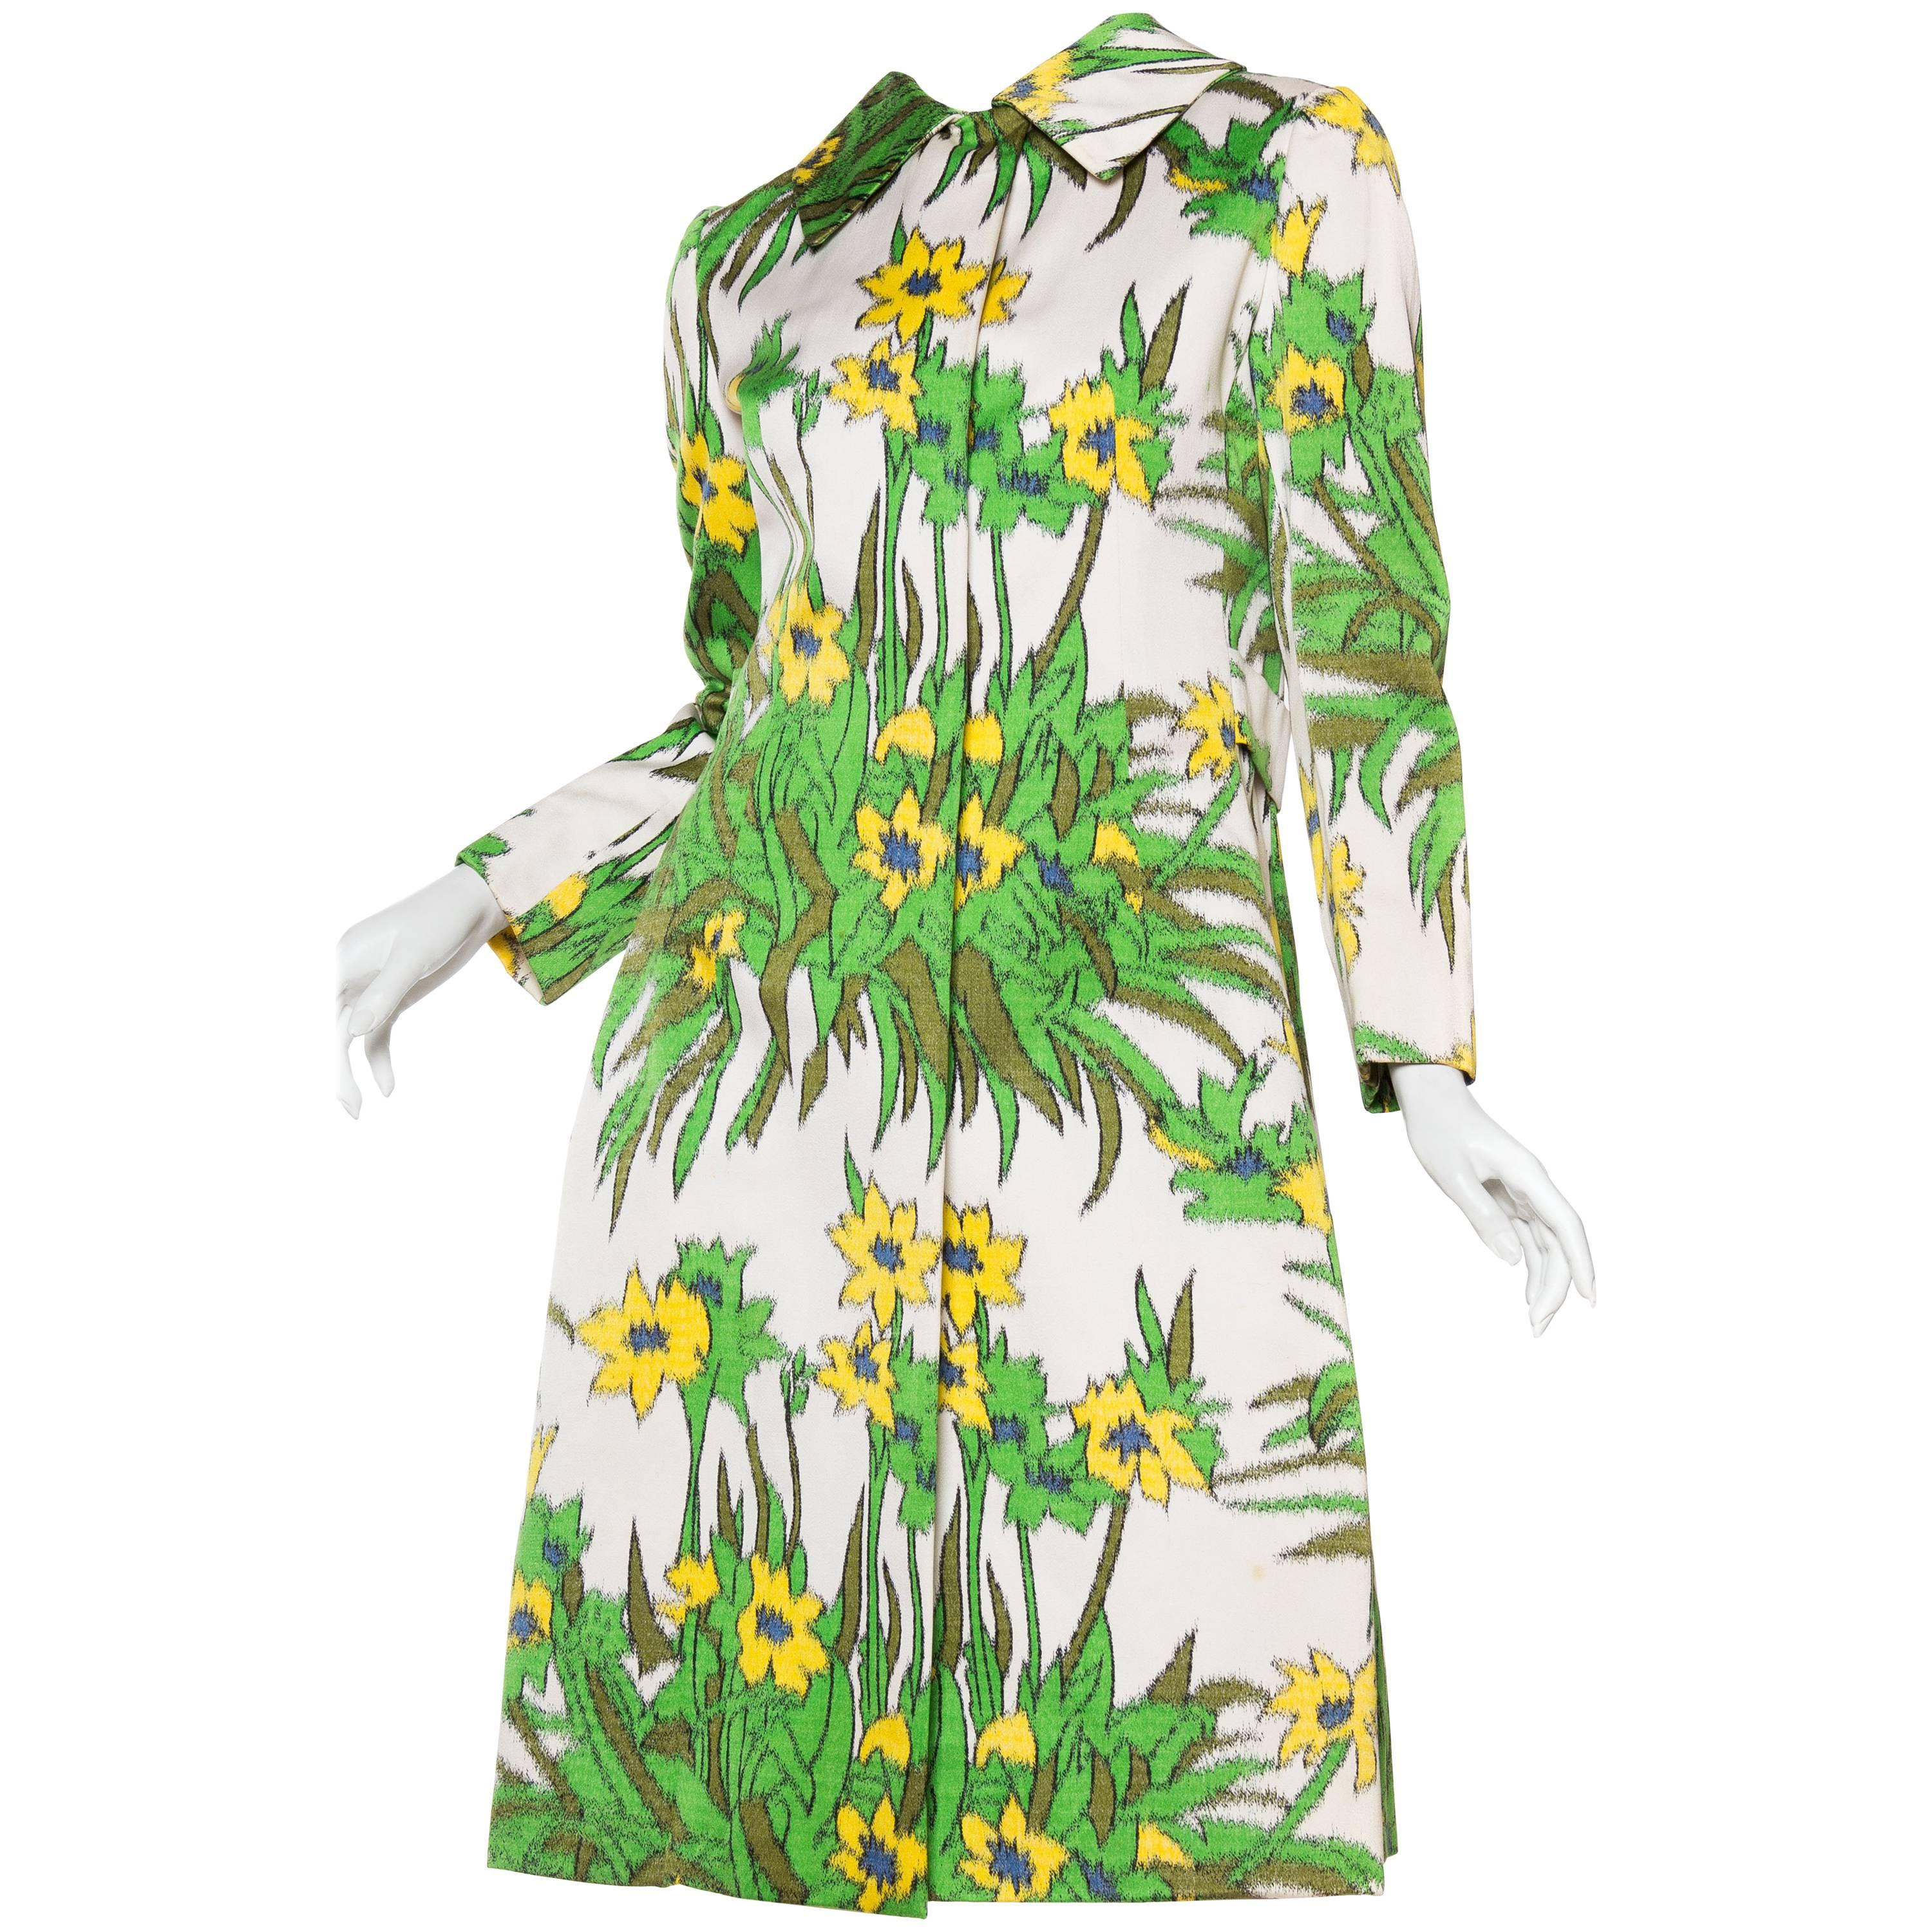 1960S CHESTER WEINBERG Green & White Cotton Floral Printed Coat